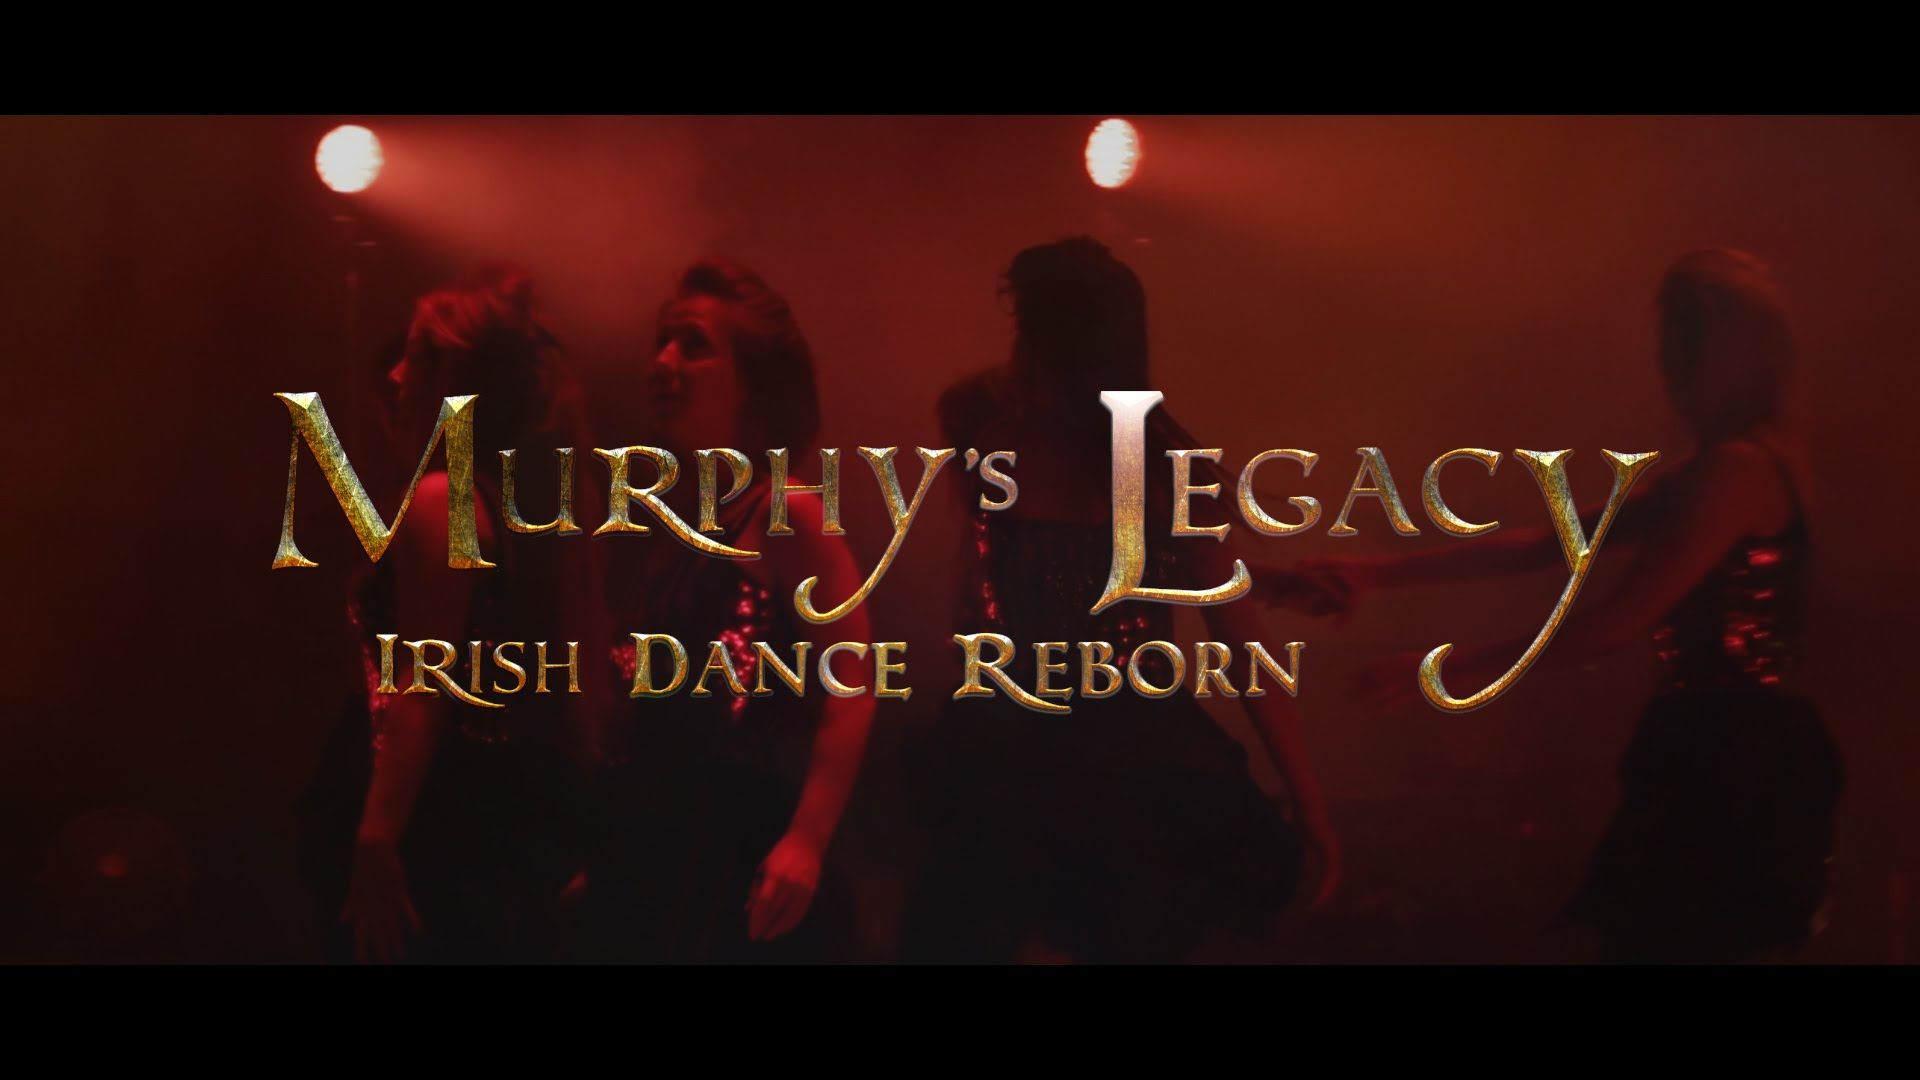 Murphy's Celtic Legacy Irish Dance Reborn